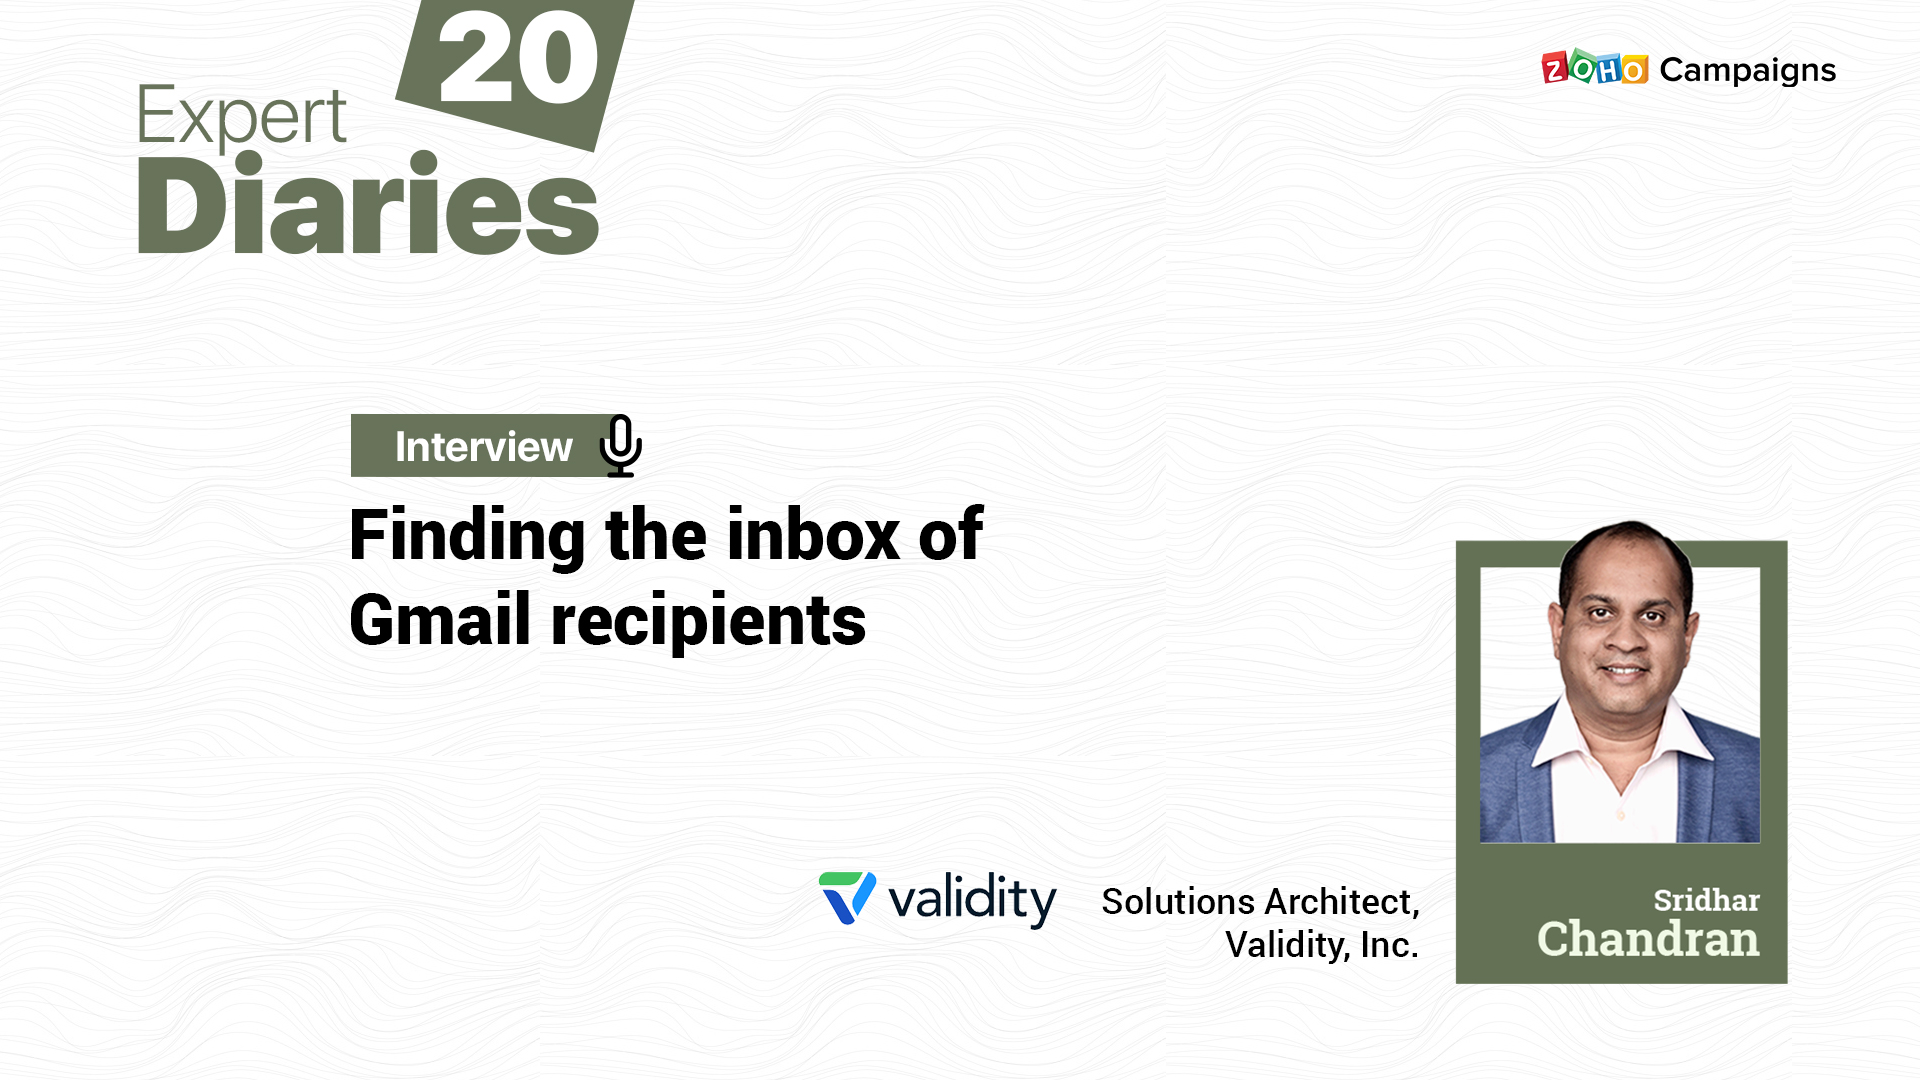 Finding the inbox of Gmail recipients